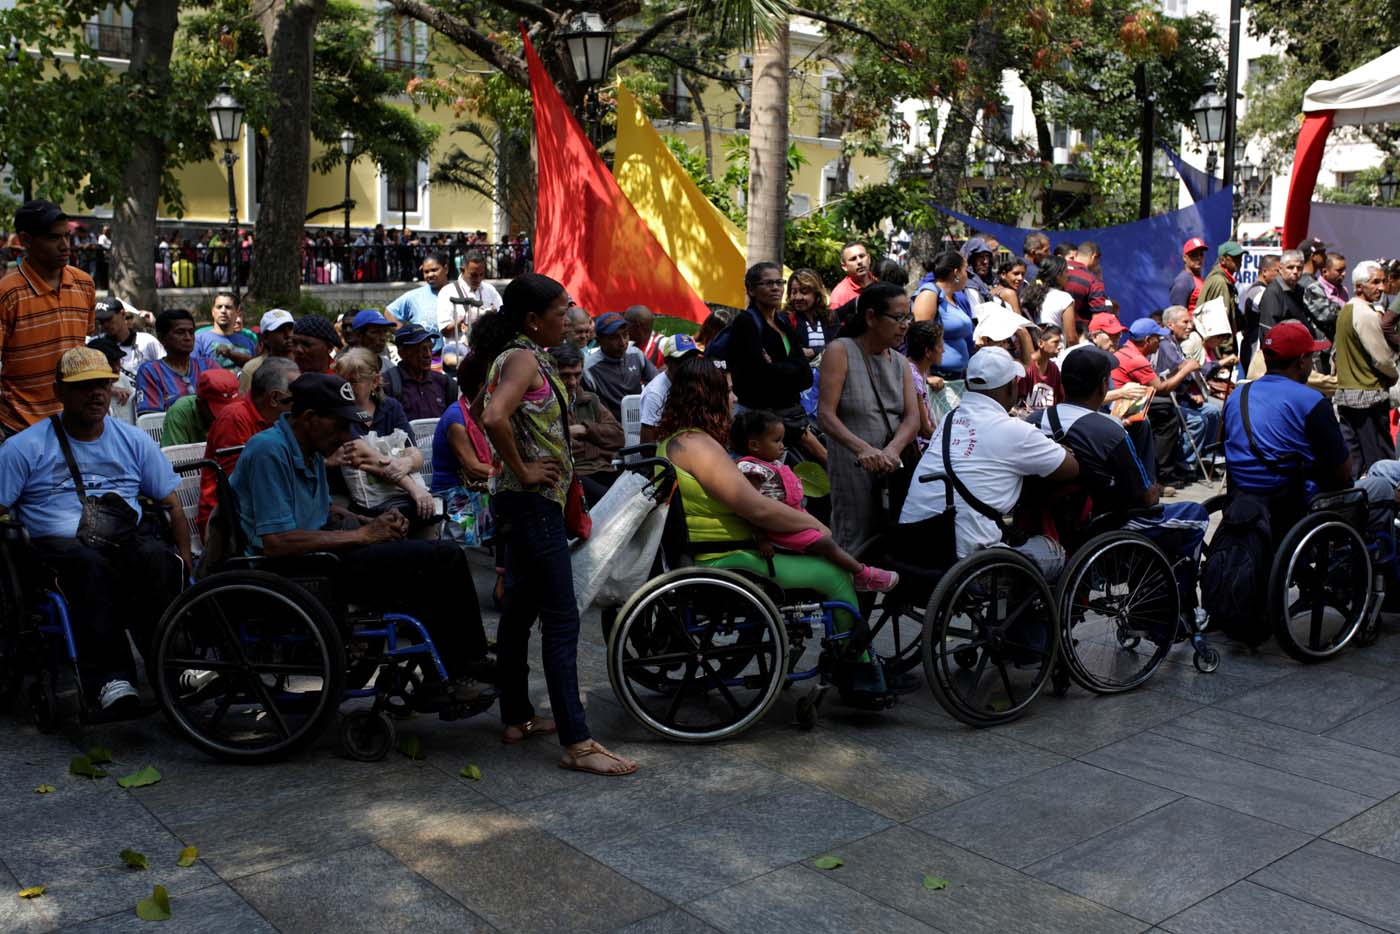 People on wheelchairs wait to apply for a card that will register them for government social programmes, in Caracas, Venezuela January 20, 2017. REUTERS/Marco Bello